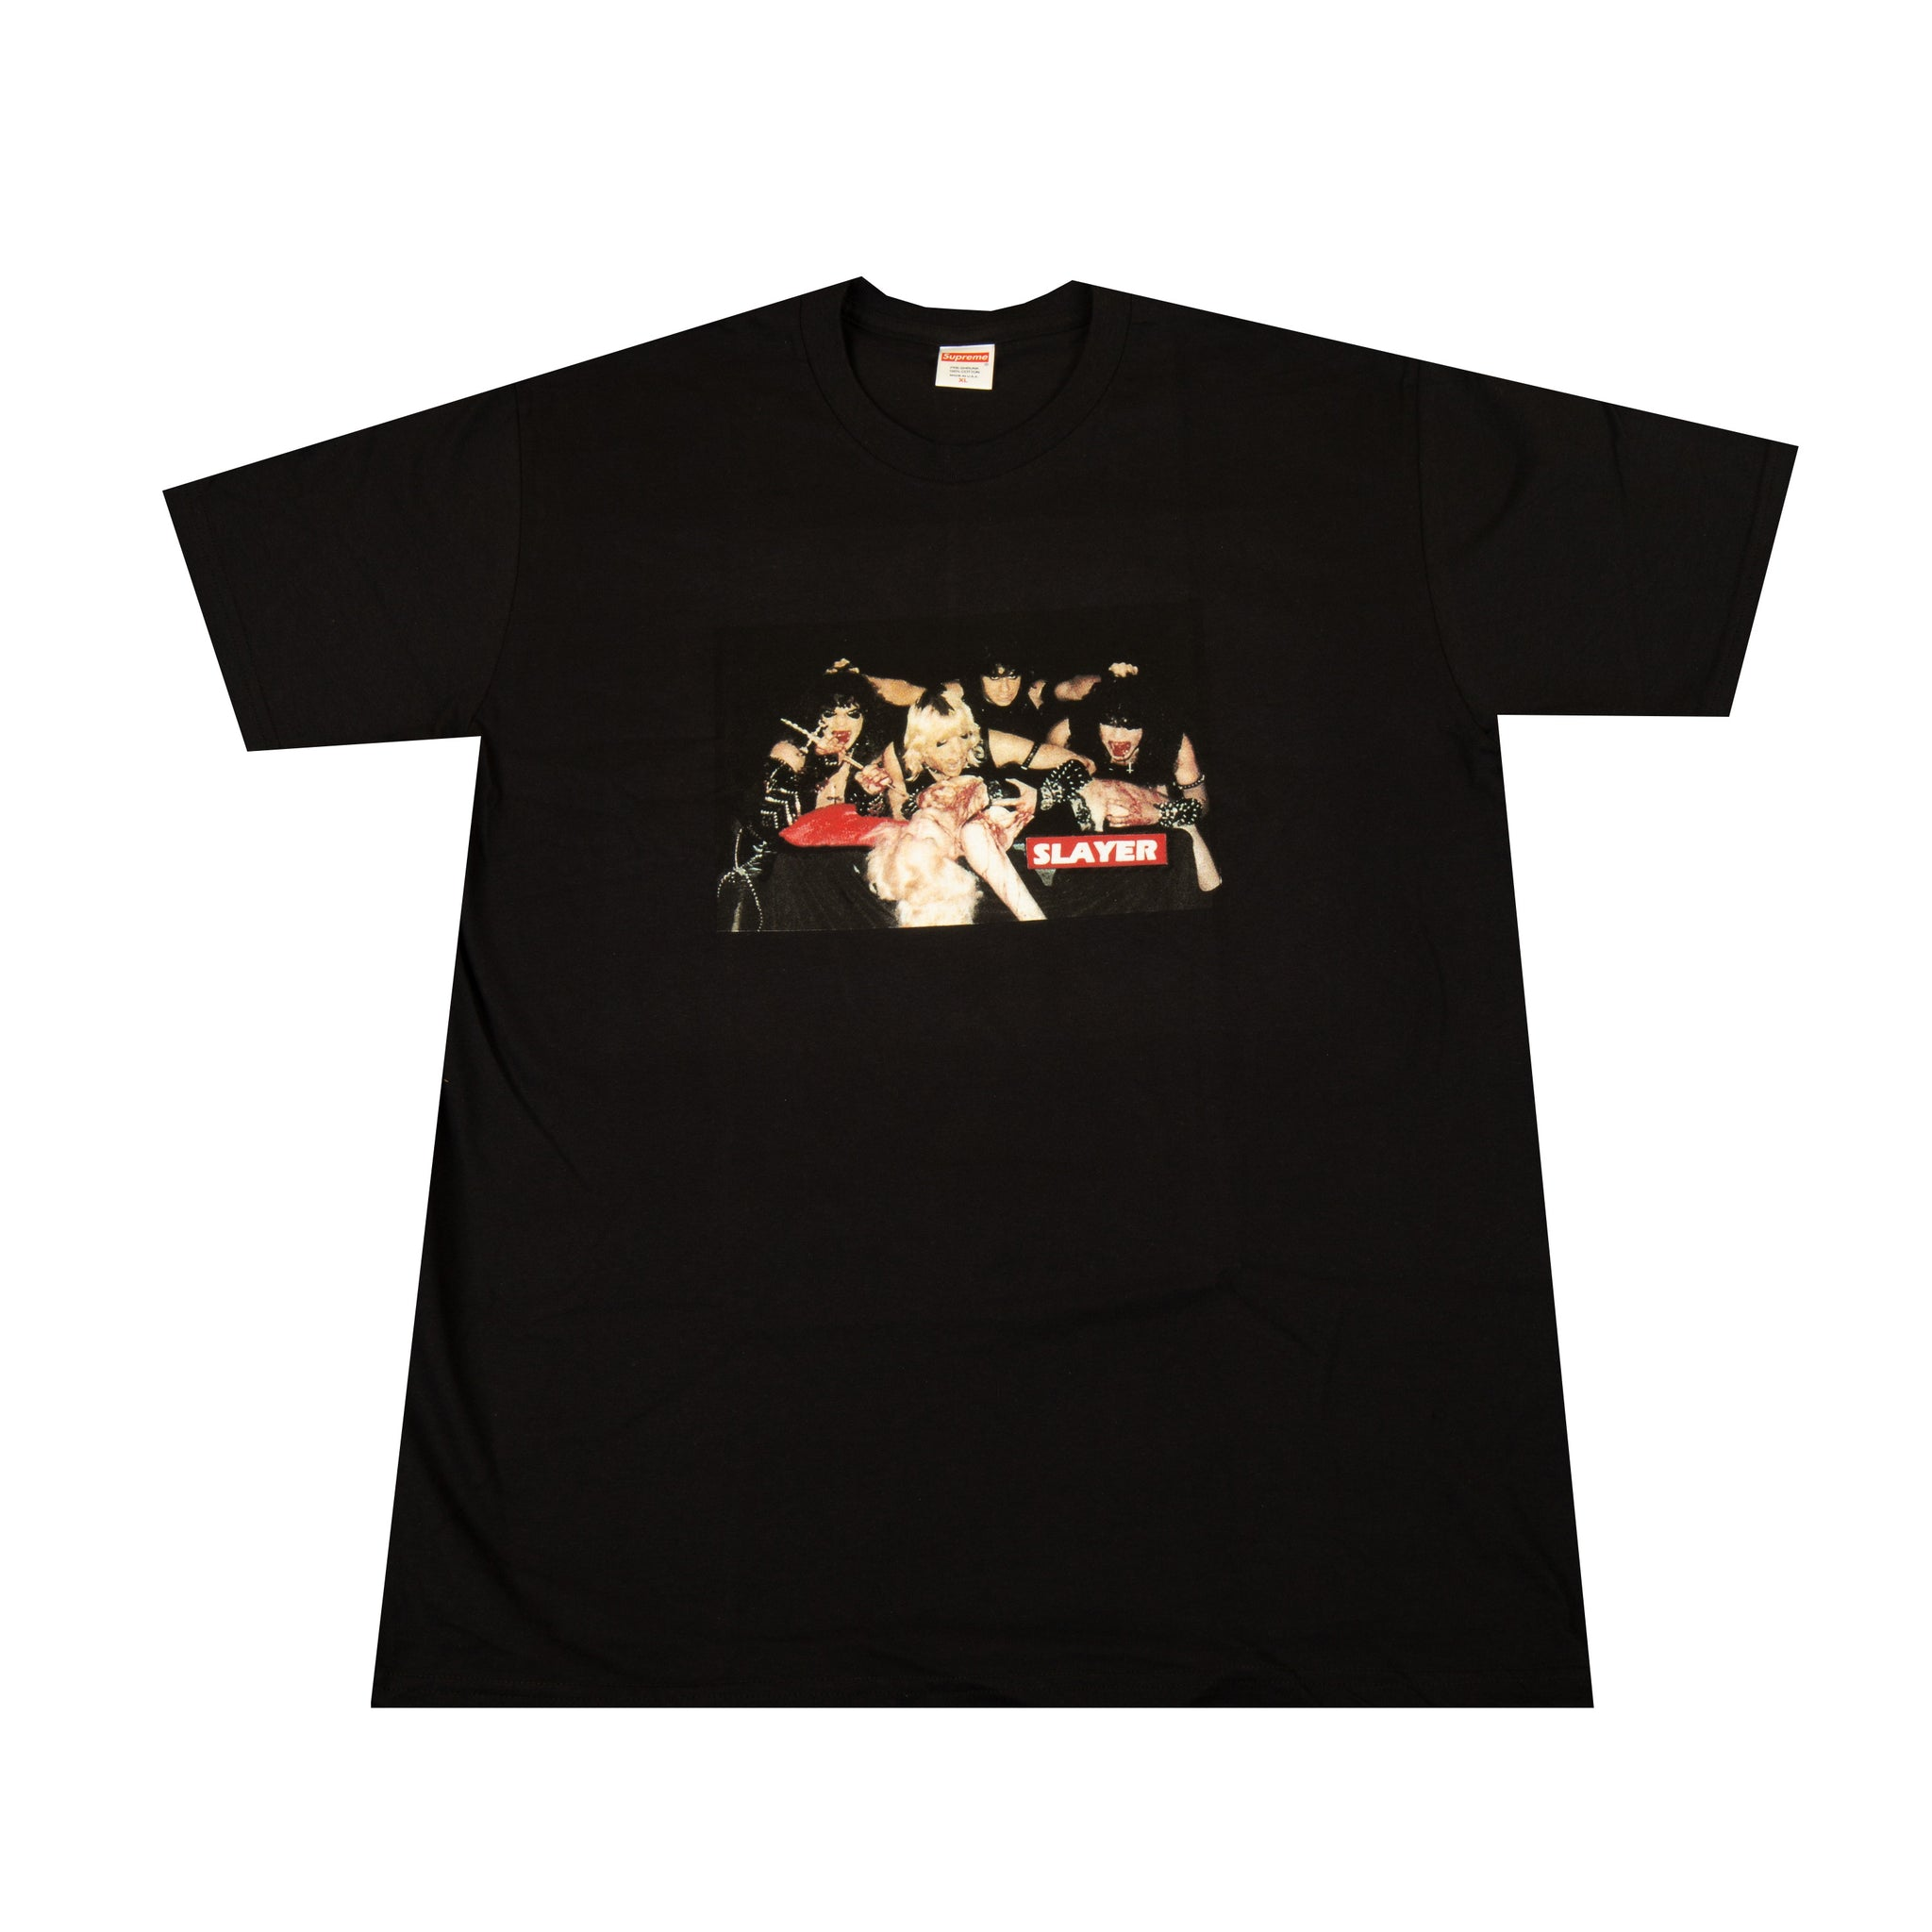 Supreme Black Slayer Altar Tee